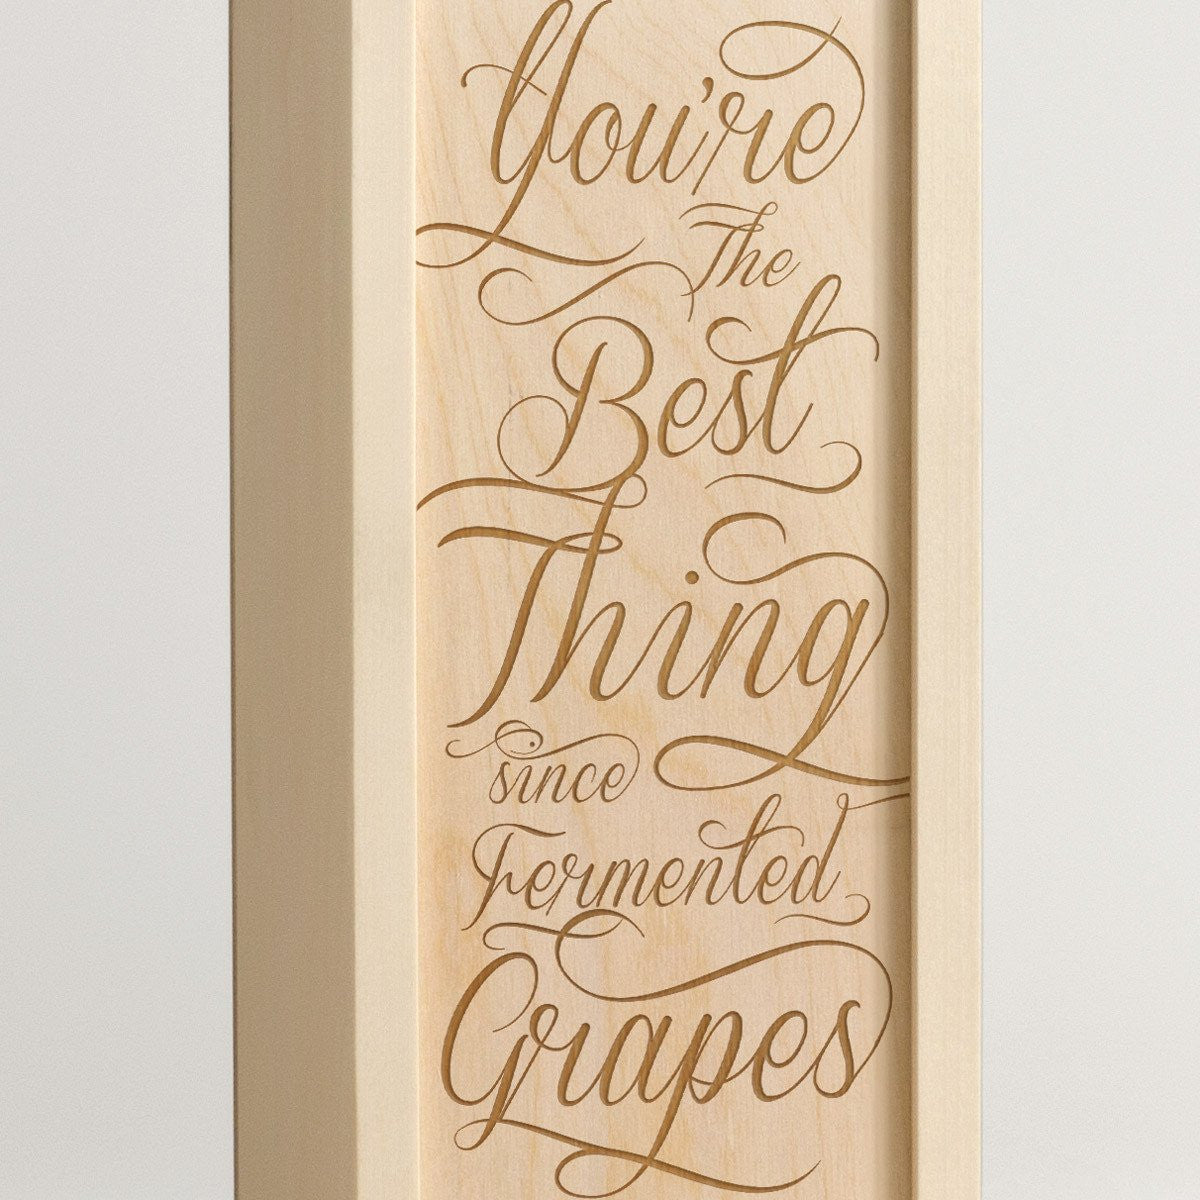 Fermented Grapes - Wine Box -Detail Image